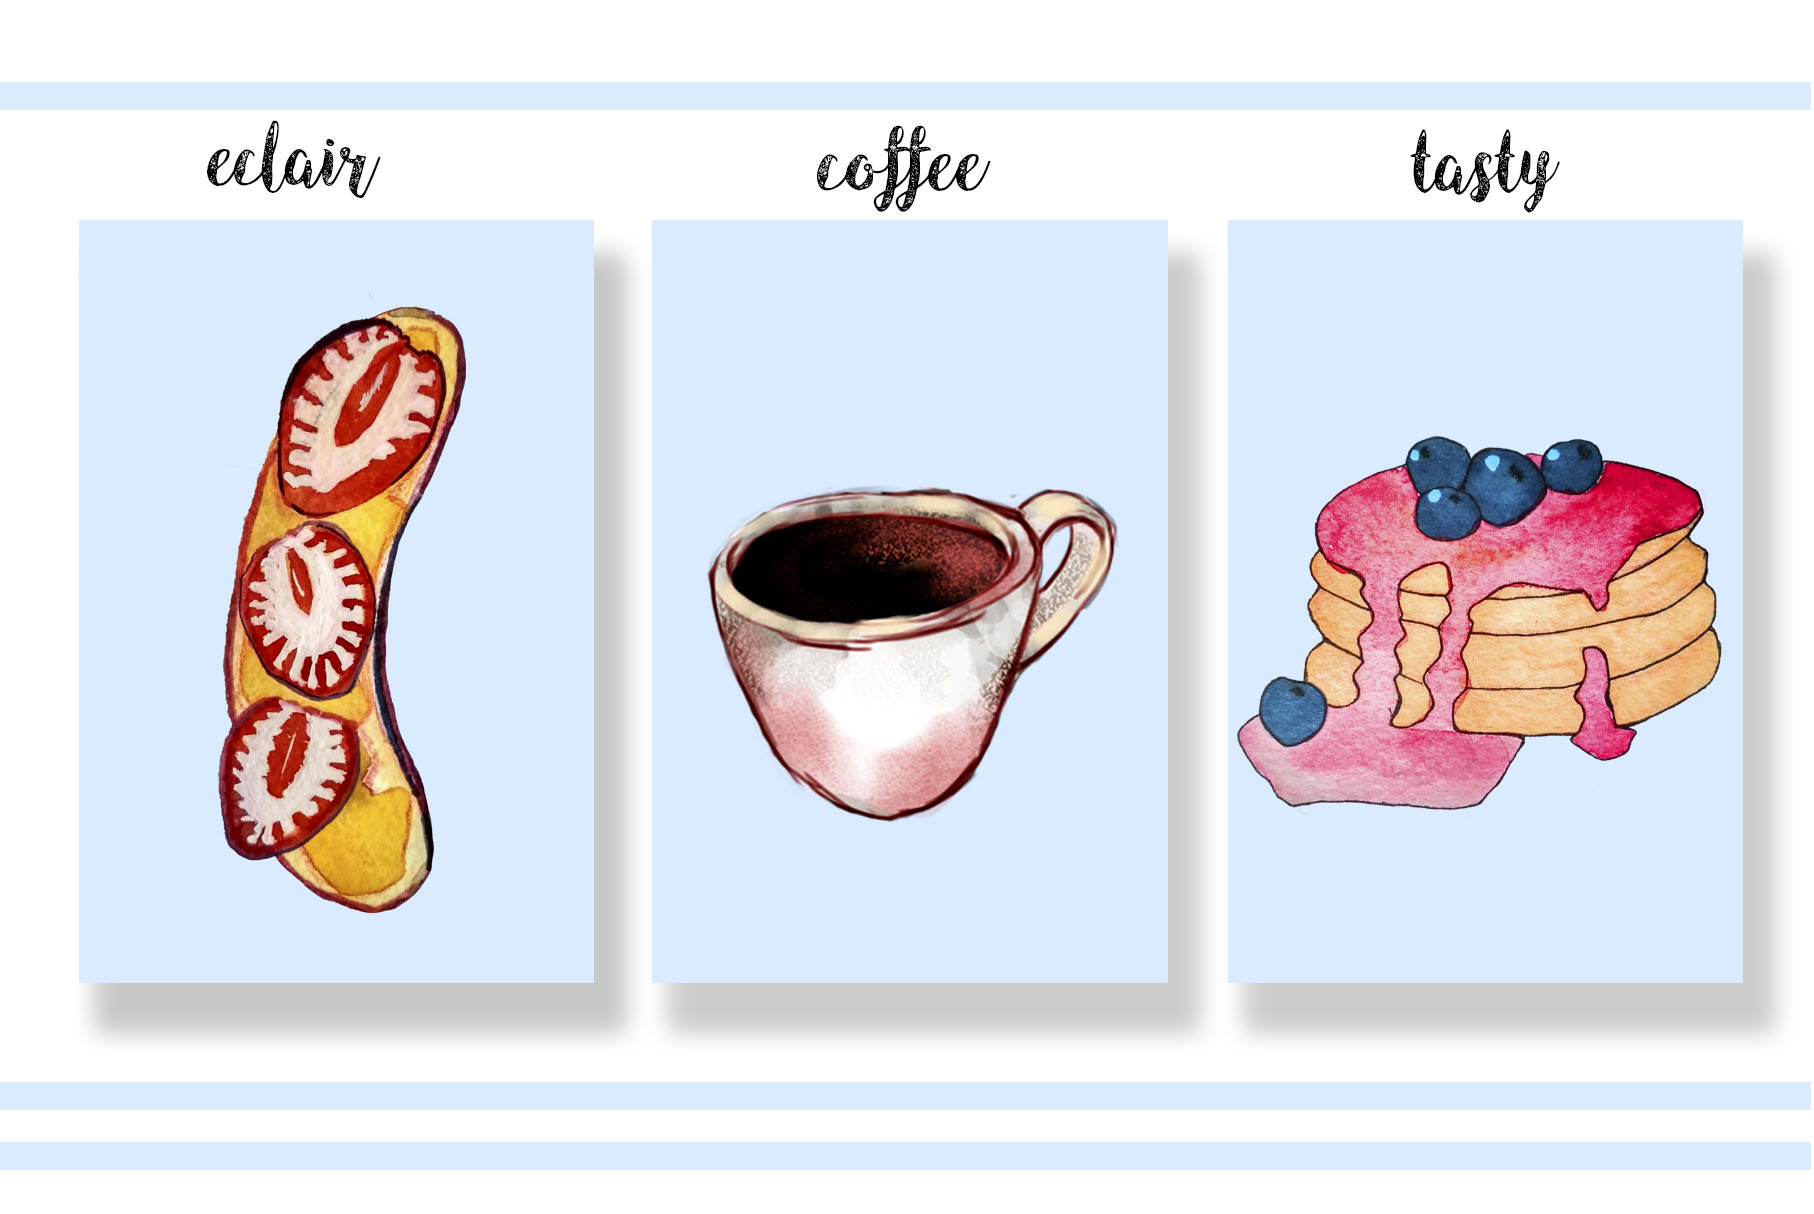 Colorful watercolor illustration. Patterns and elements example image 3